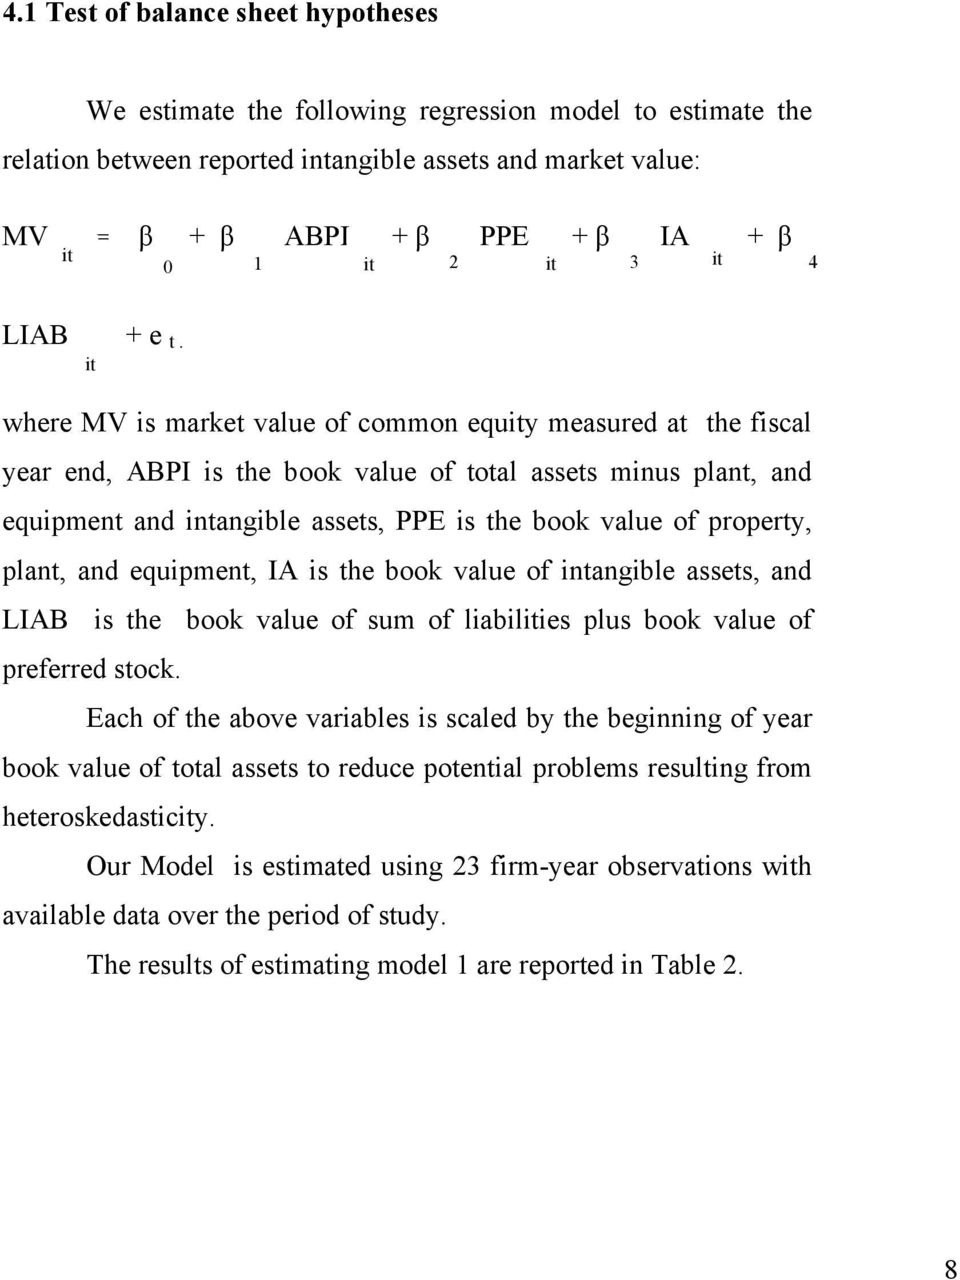 it where MV is market value of common equity measured at the fiscal year end, ABPI is the book value of total assets minus plant, and equipment and intangible assets, PPE is the book value of